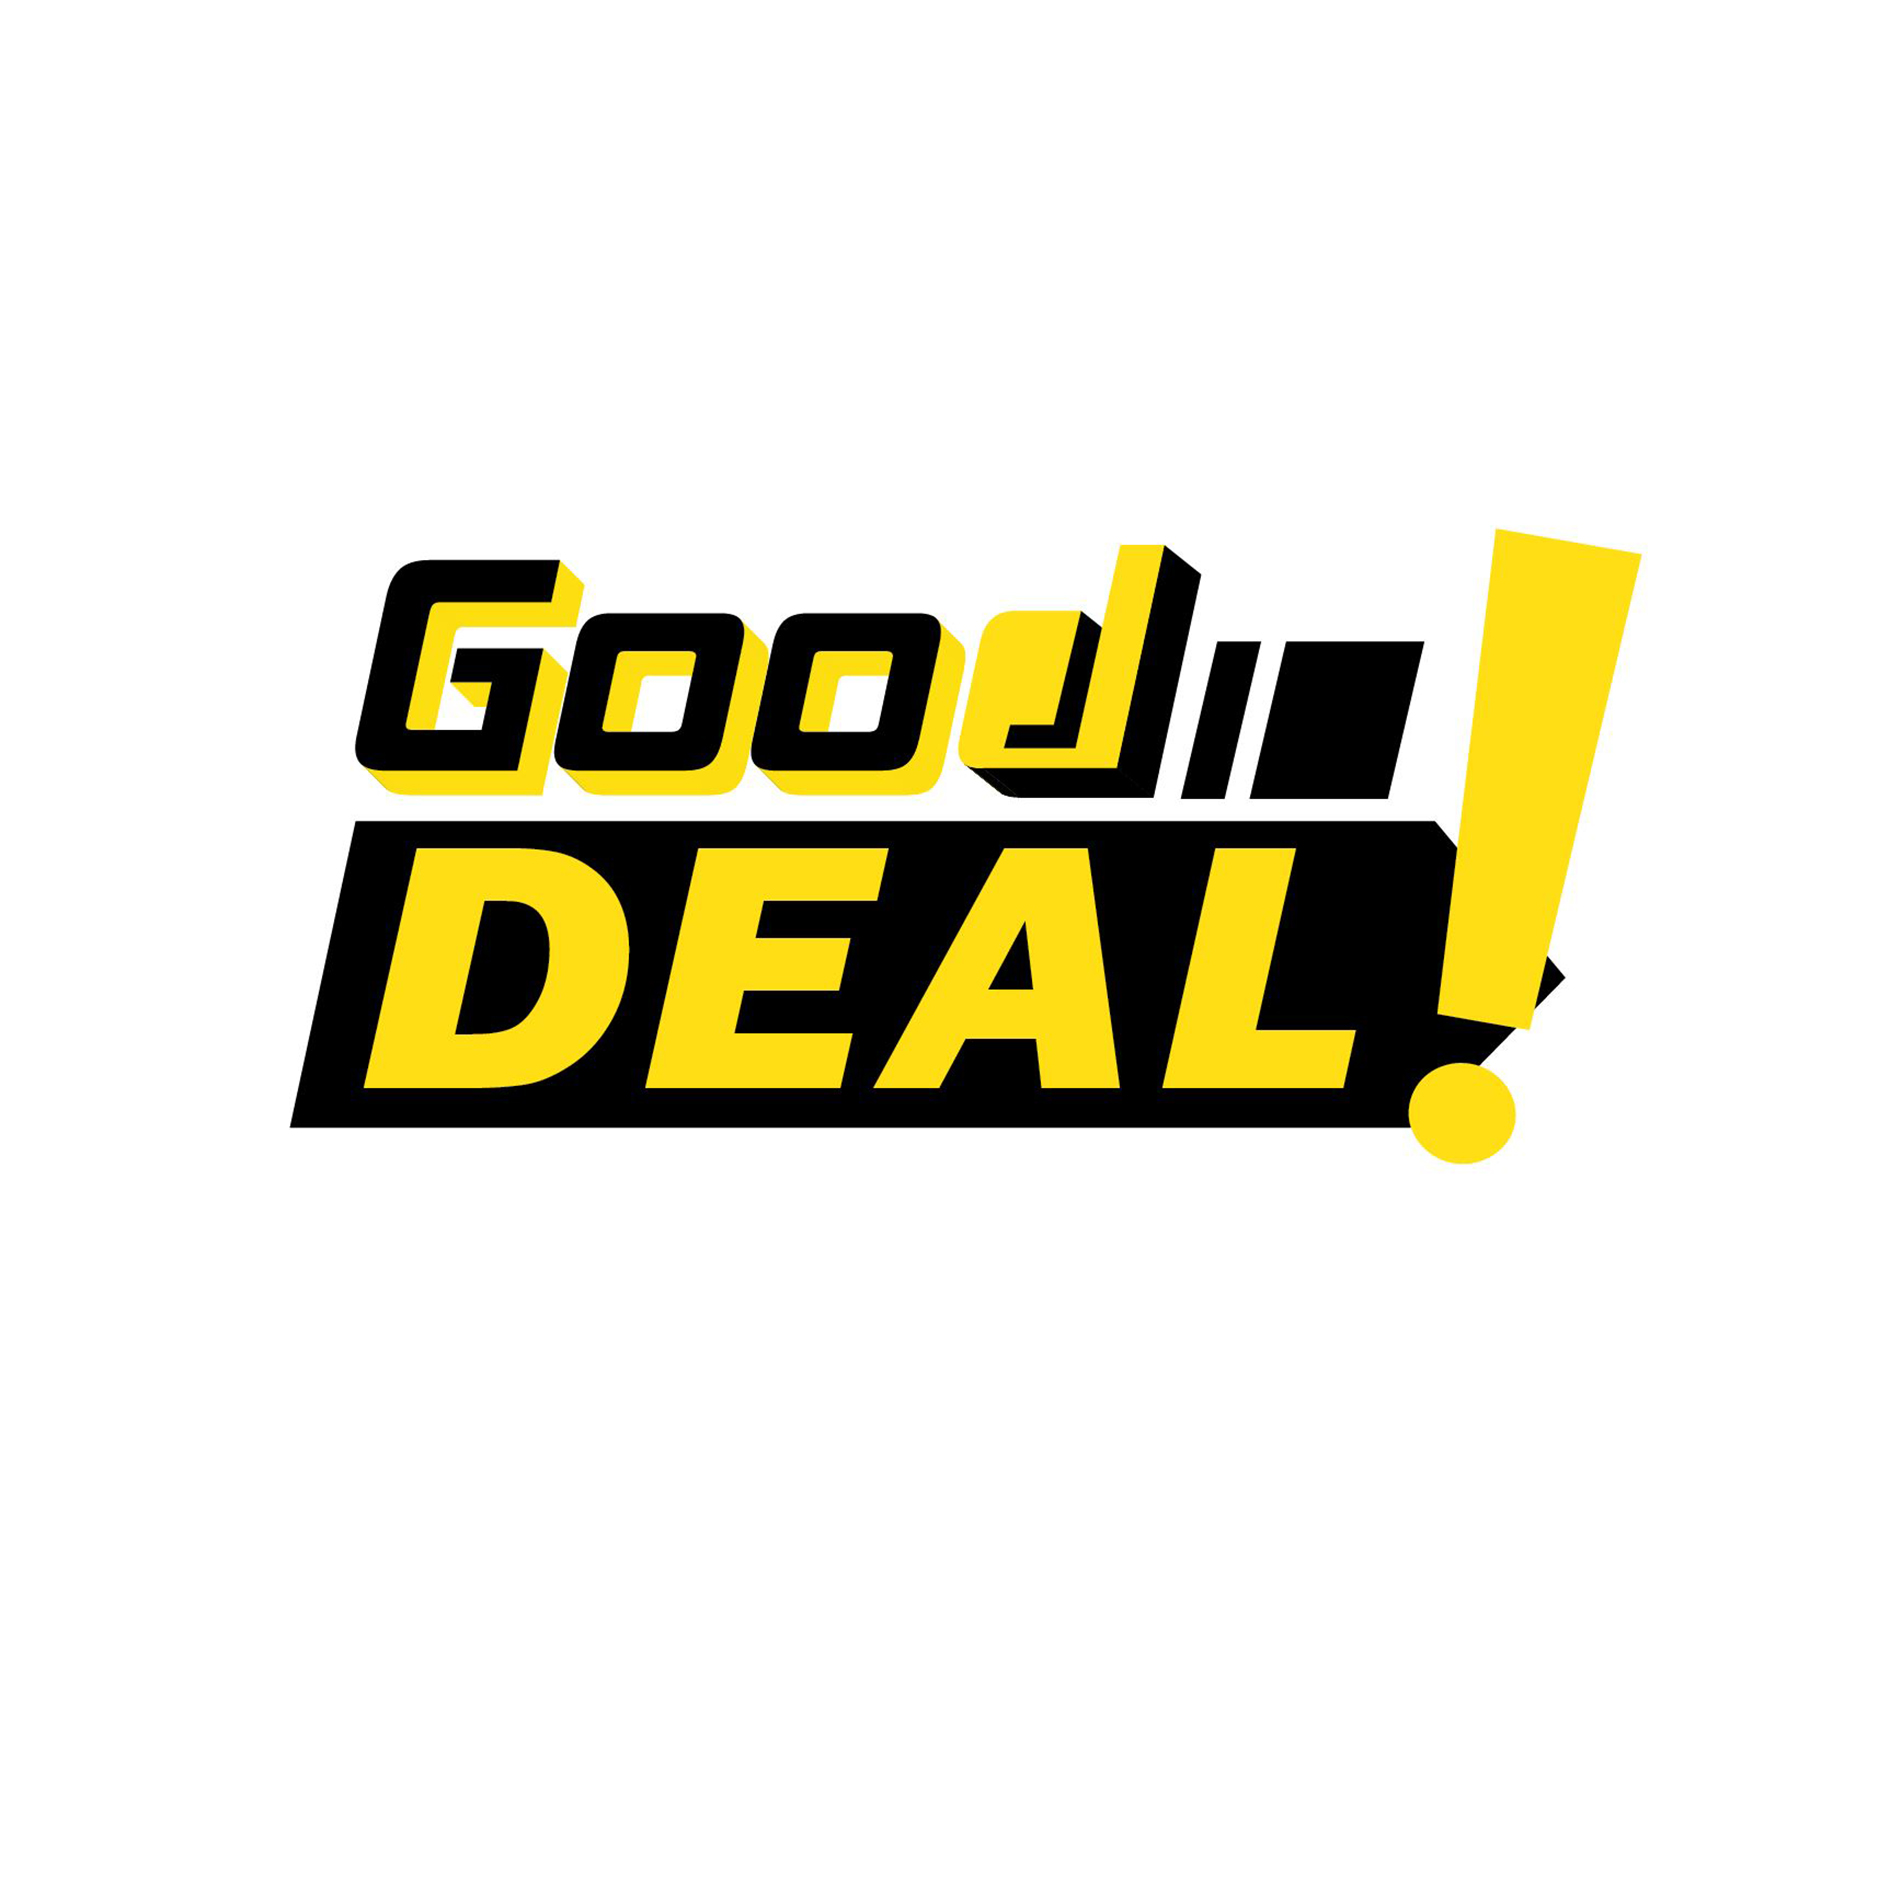 Good Deal - TV Show Title   Good Deal is a Vietnamese American shopping show aired on Viet Shopping Television channel in 2016.